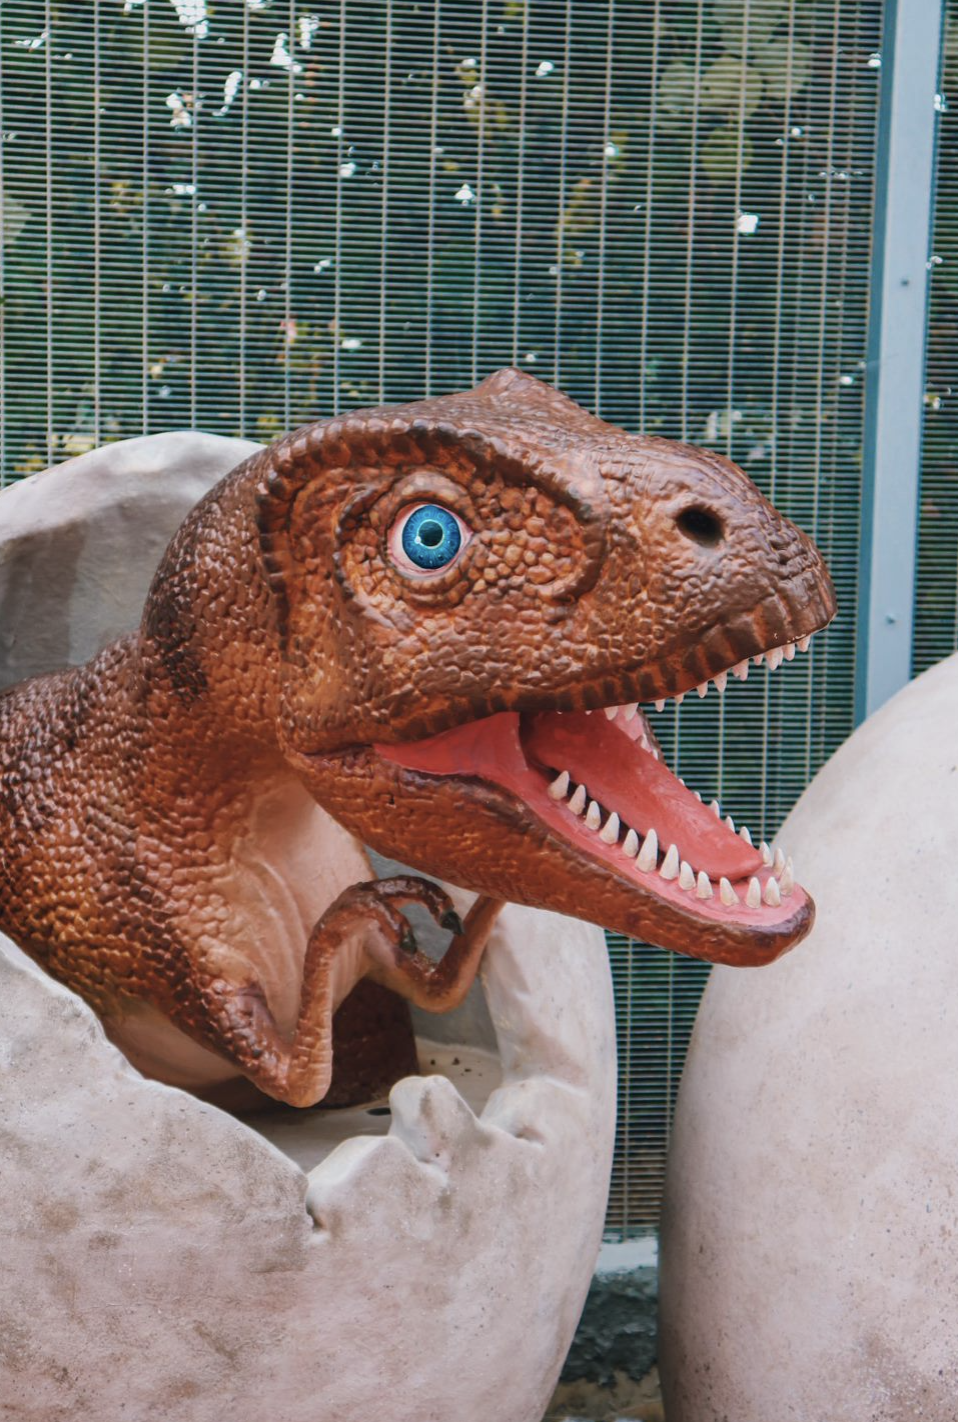 Baby dinosaur and eggs exhibit at Changi Jurassic Mile. Photo courtesy: CAG